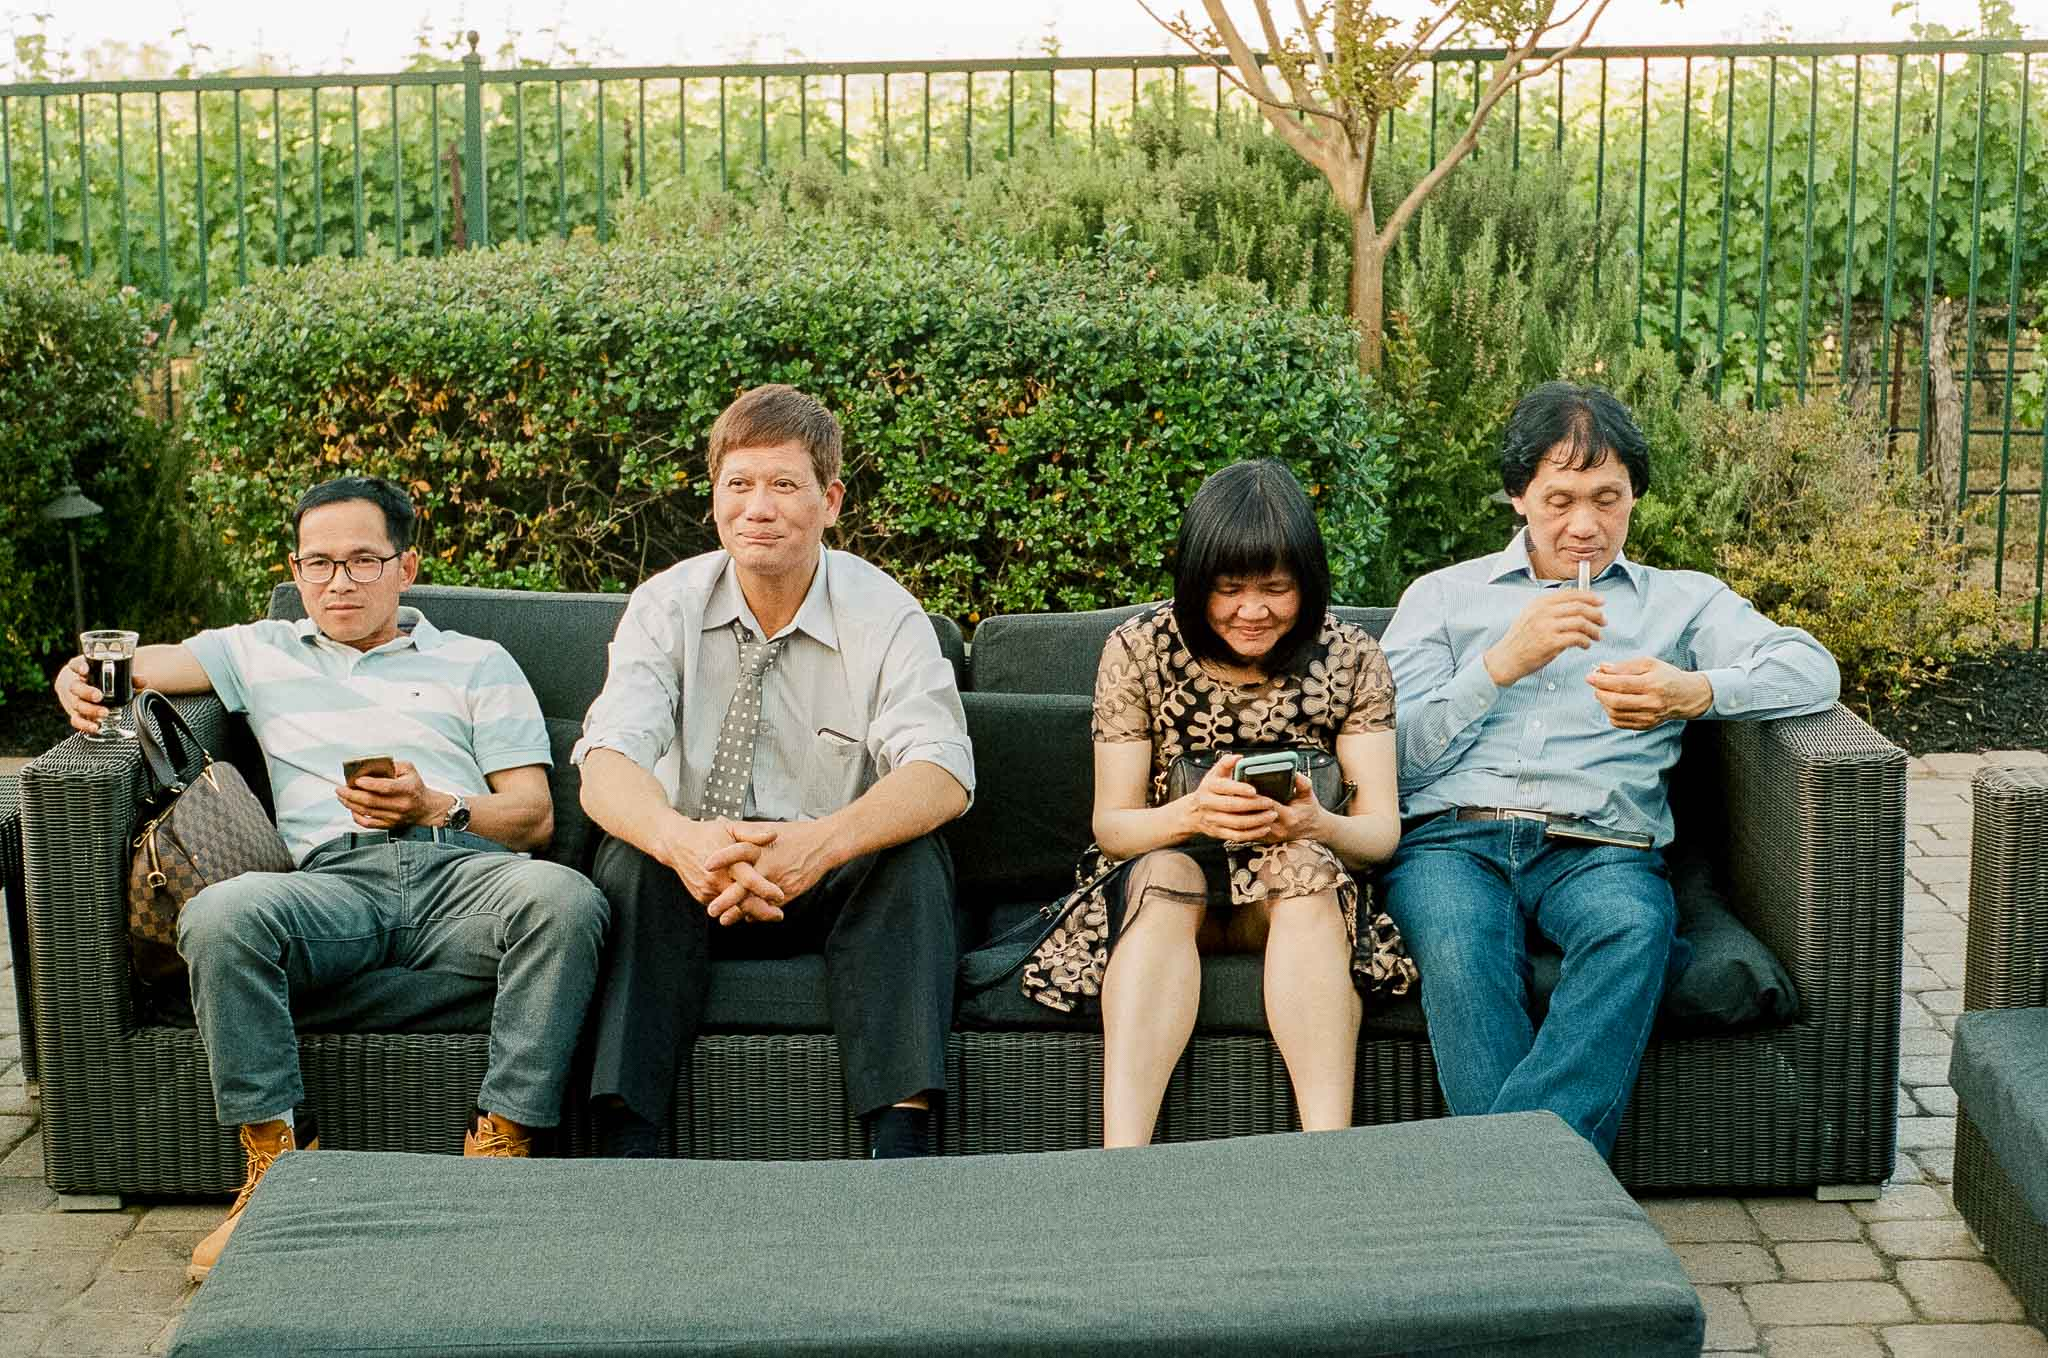 Wedding-Guests-Couch-Outdoors.jpg